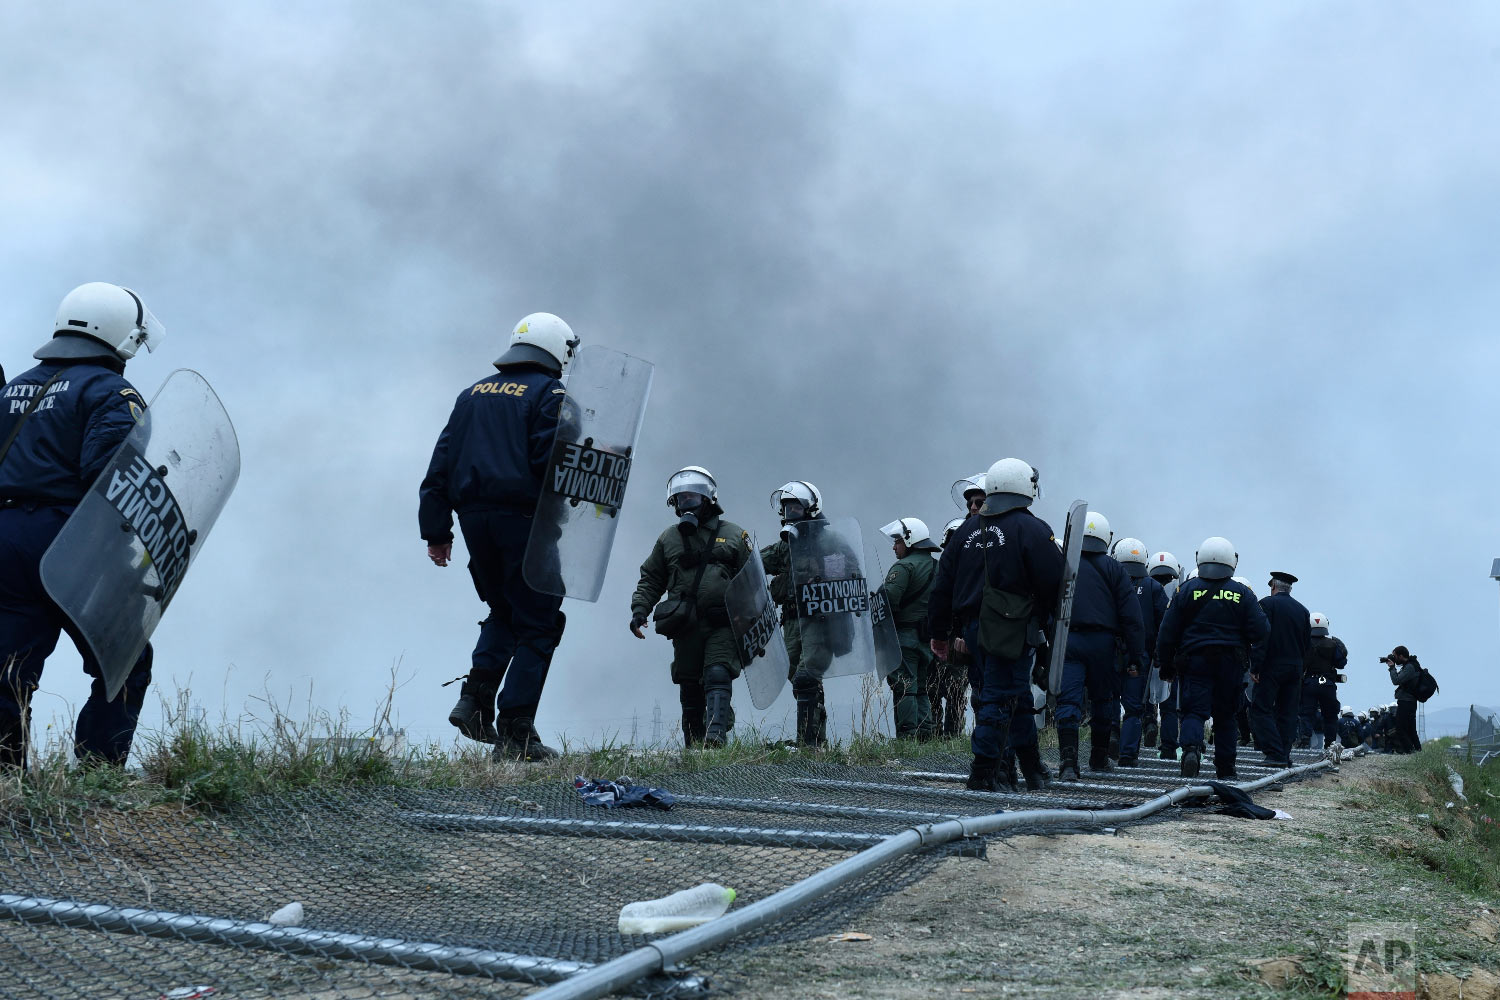 Riot police stand on a fallen fence of a refugee camp in the village of Diavata, west of Thessaloniki, northern Greece, Saturday, April 6, 2019. (AP Photo/Giannis Papanikos)